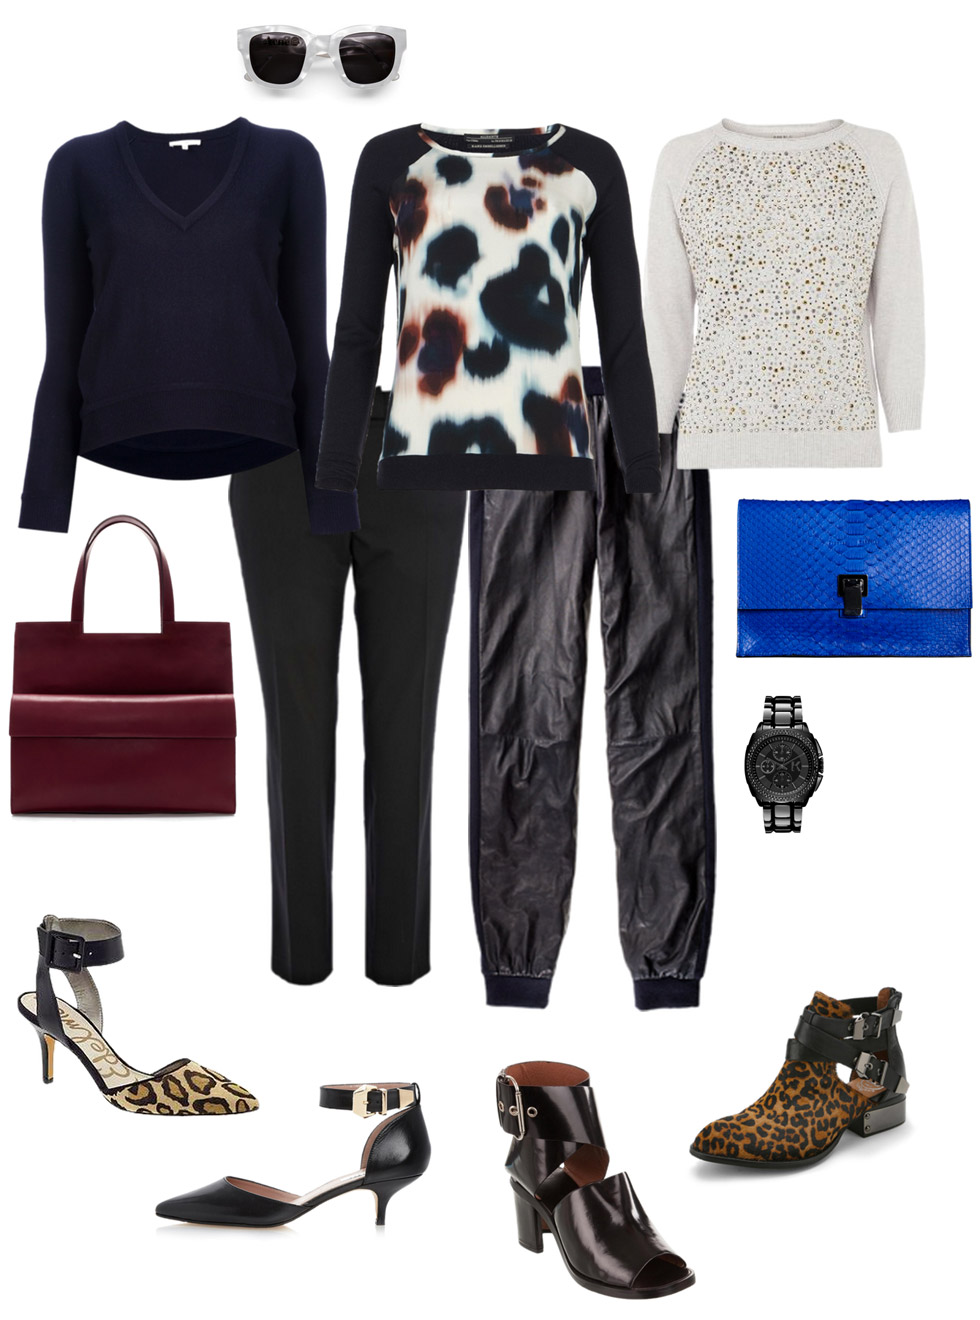 Ankle Pants and Ankle Strap Shoes